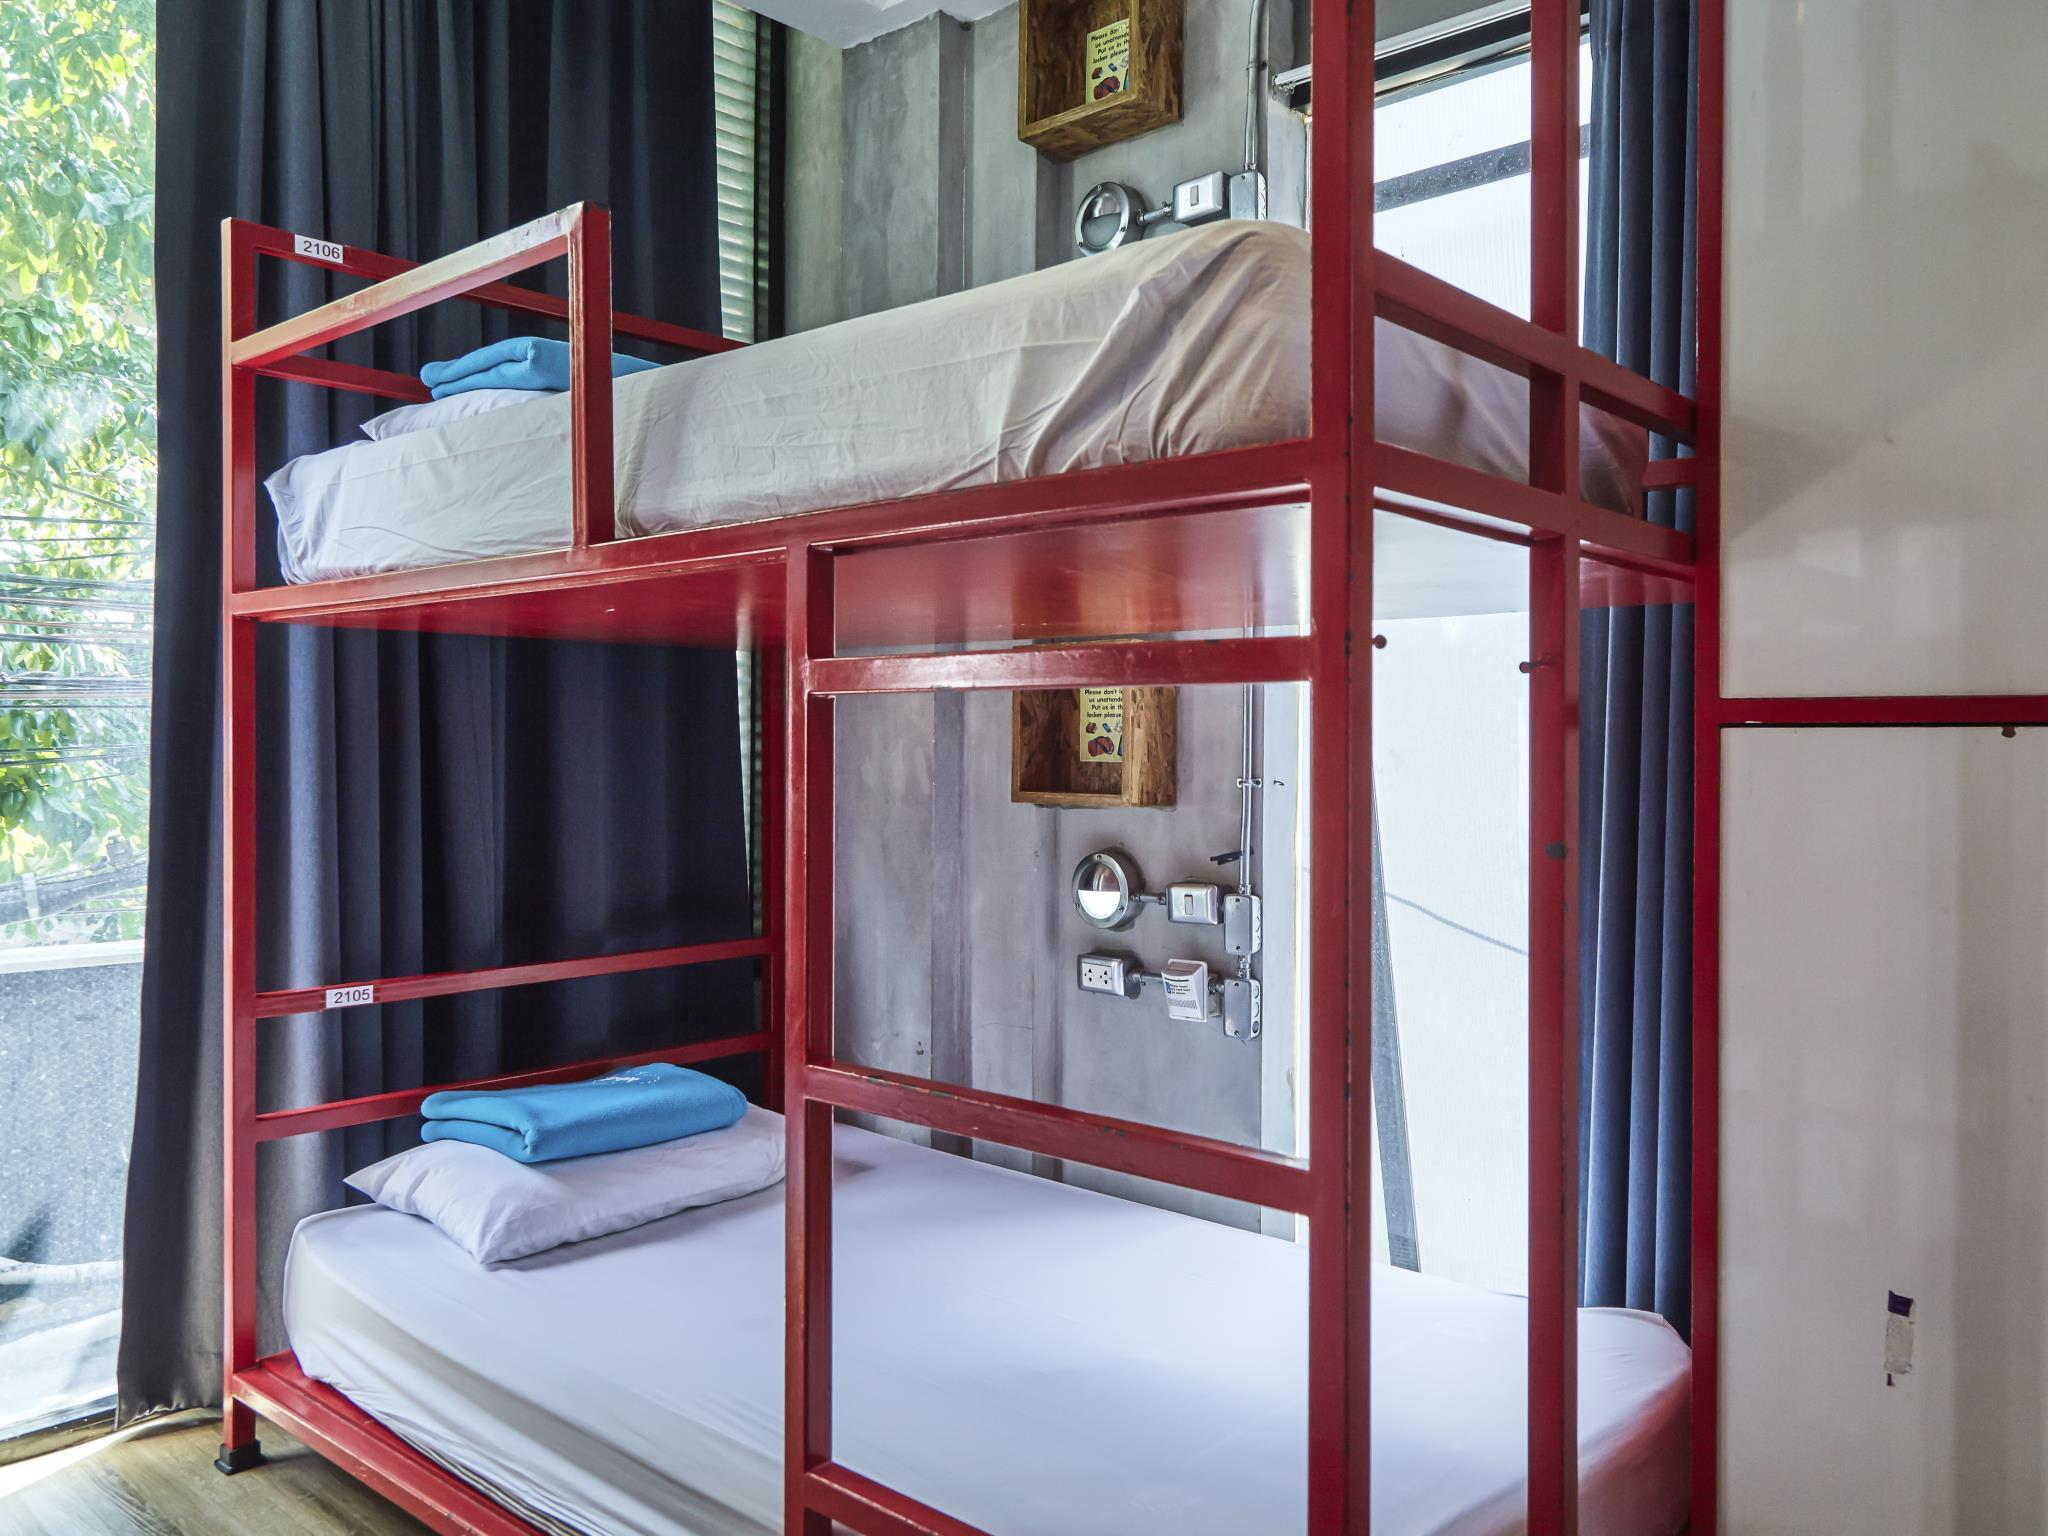 Private Room for 8 People with Bunk Bed